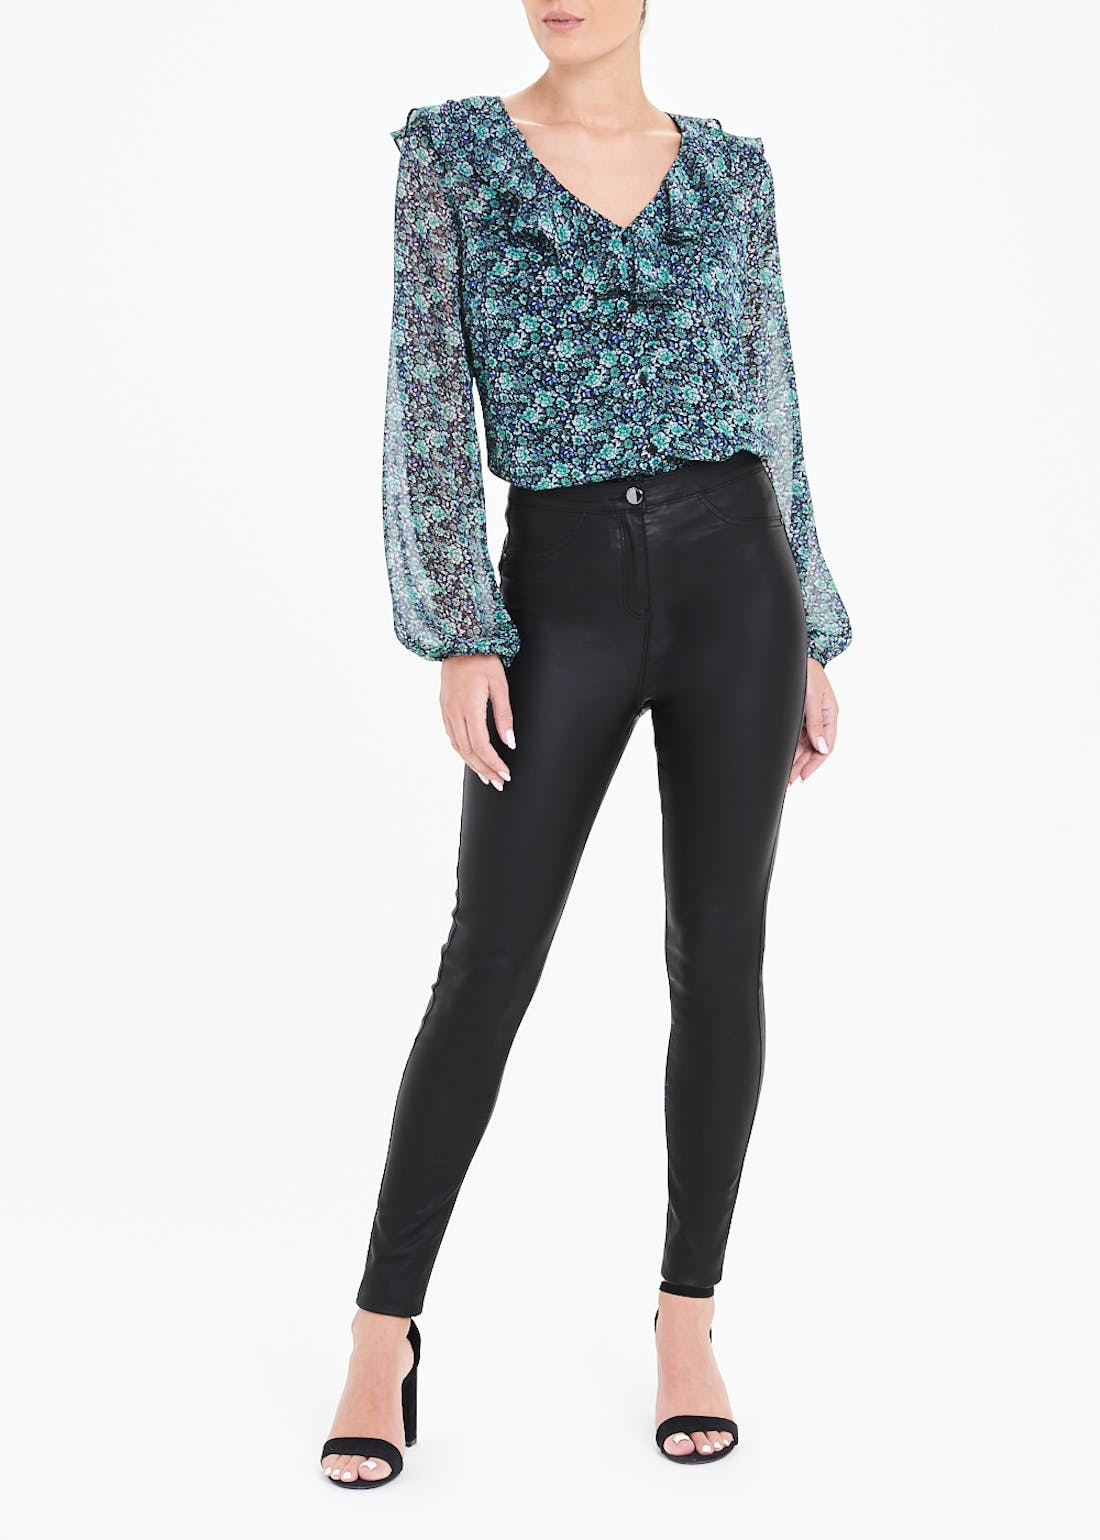 Jessie High Waisted Coated Push Up Jeans